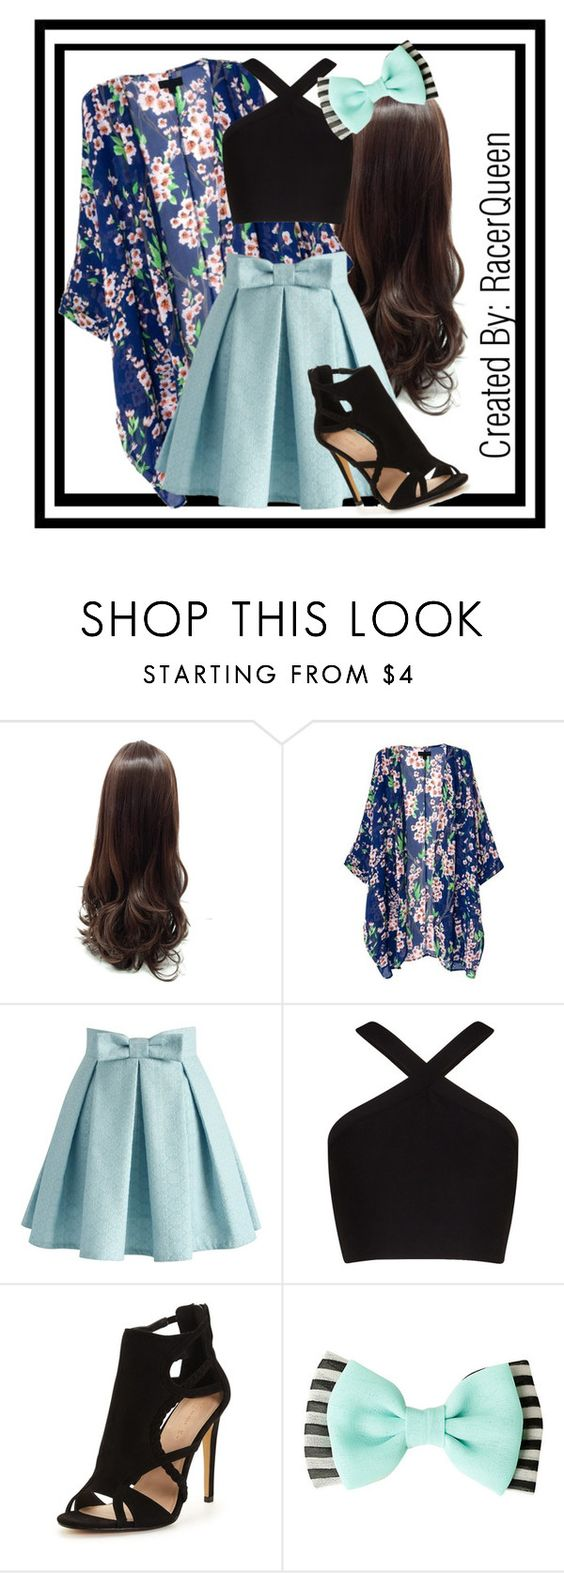 """Minty and Sweet"" by racerqueen ❤ liked on Polyvore featuring Chicwish and BCBGMAXAZRIA"